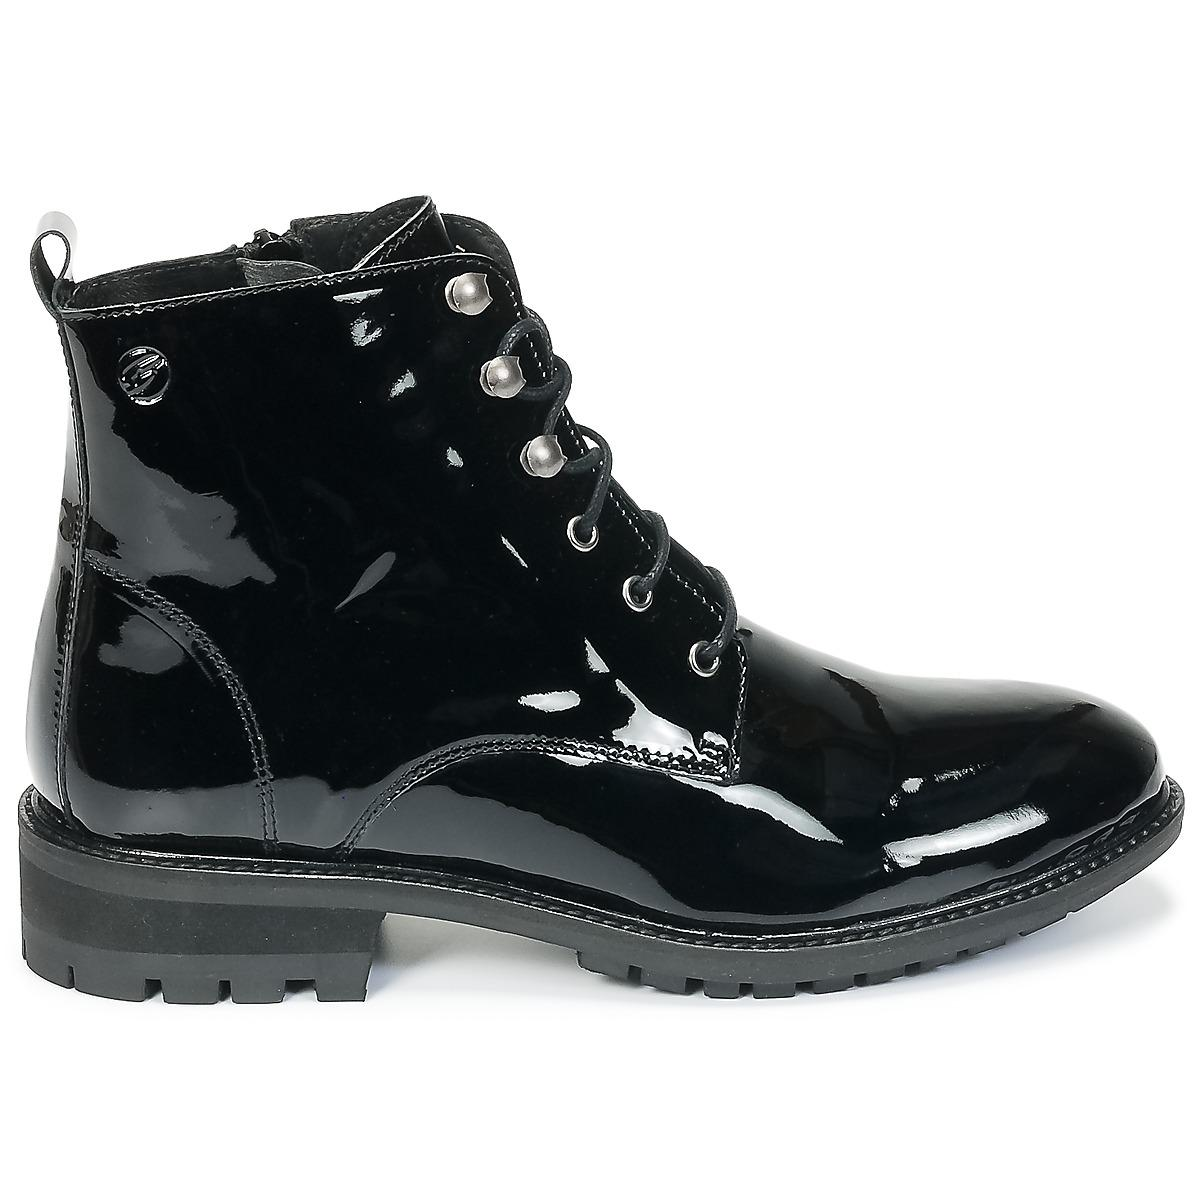 Betty London Leather Hildie Mid Boots in Black - Save 9%